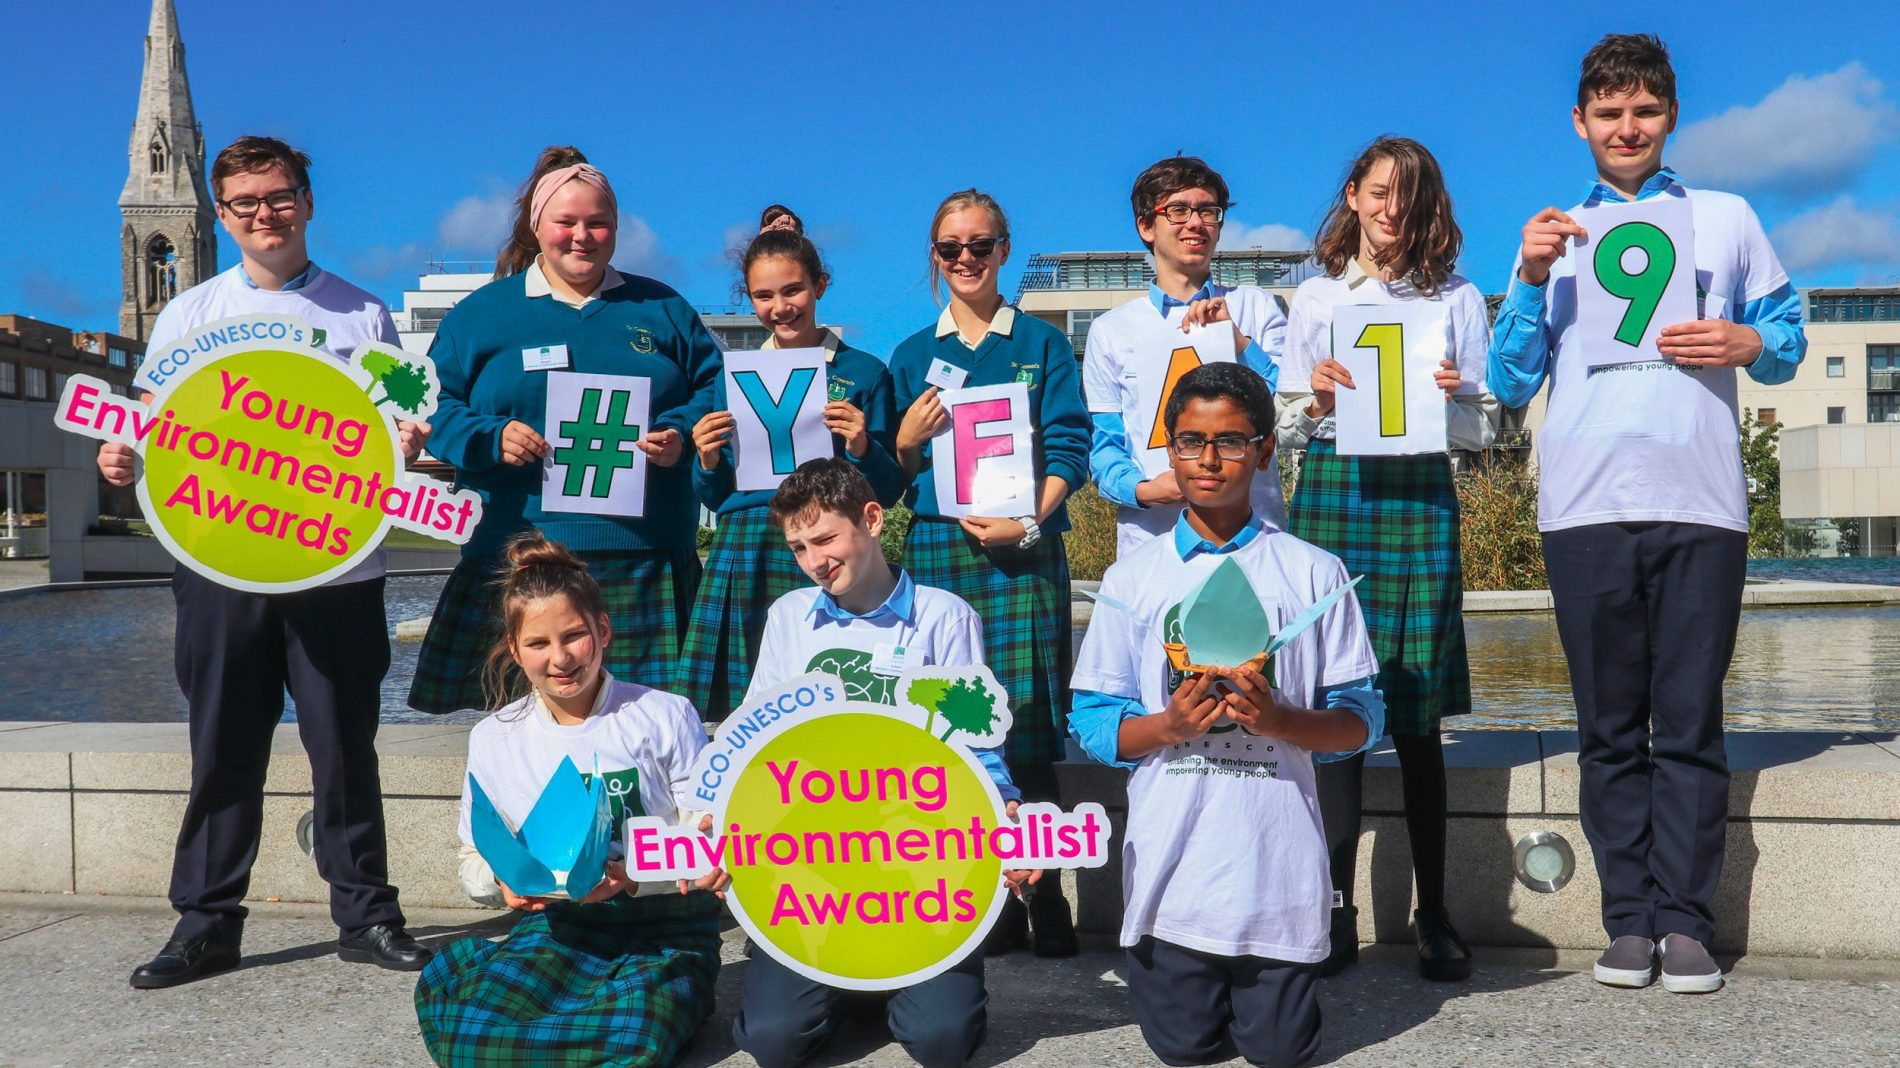 Official YEA 2019 photo - students holding signs